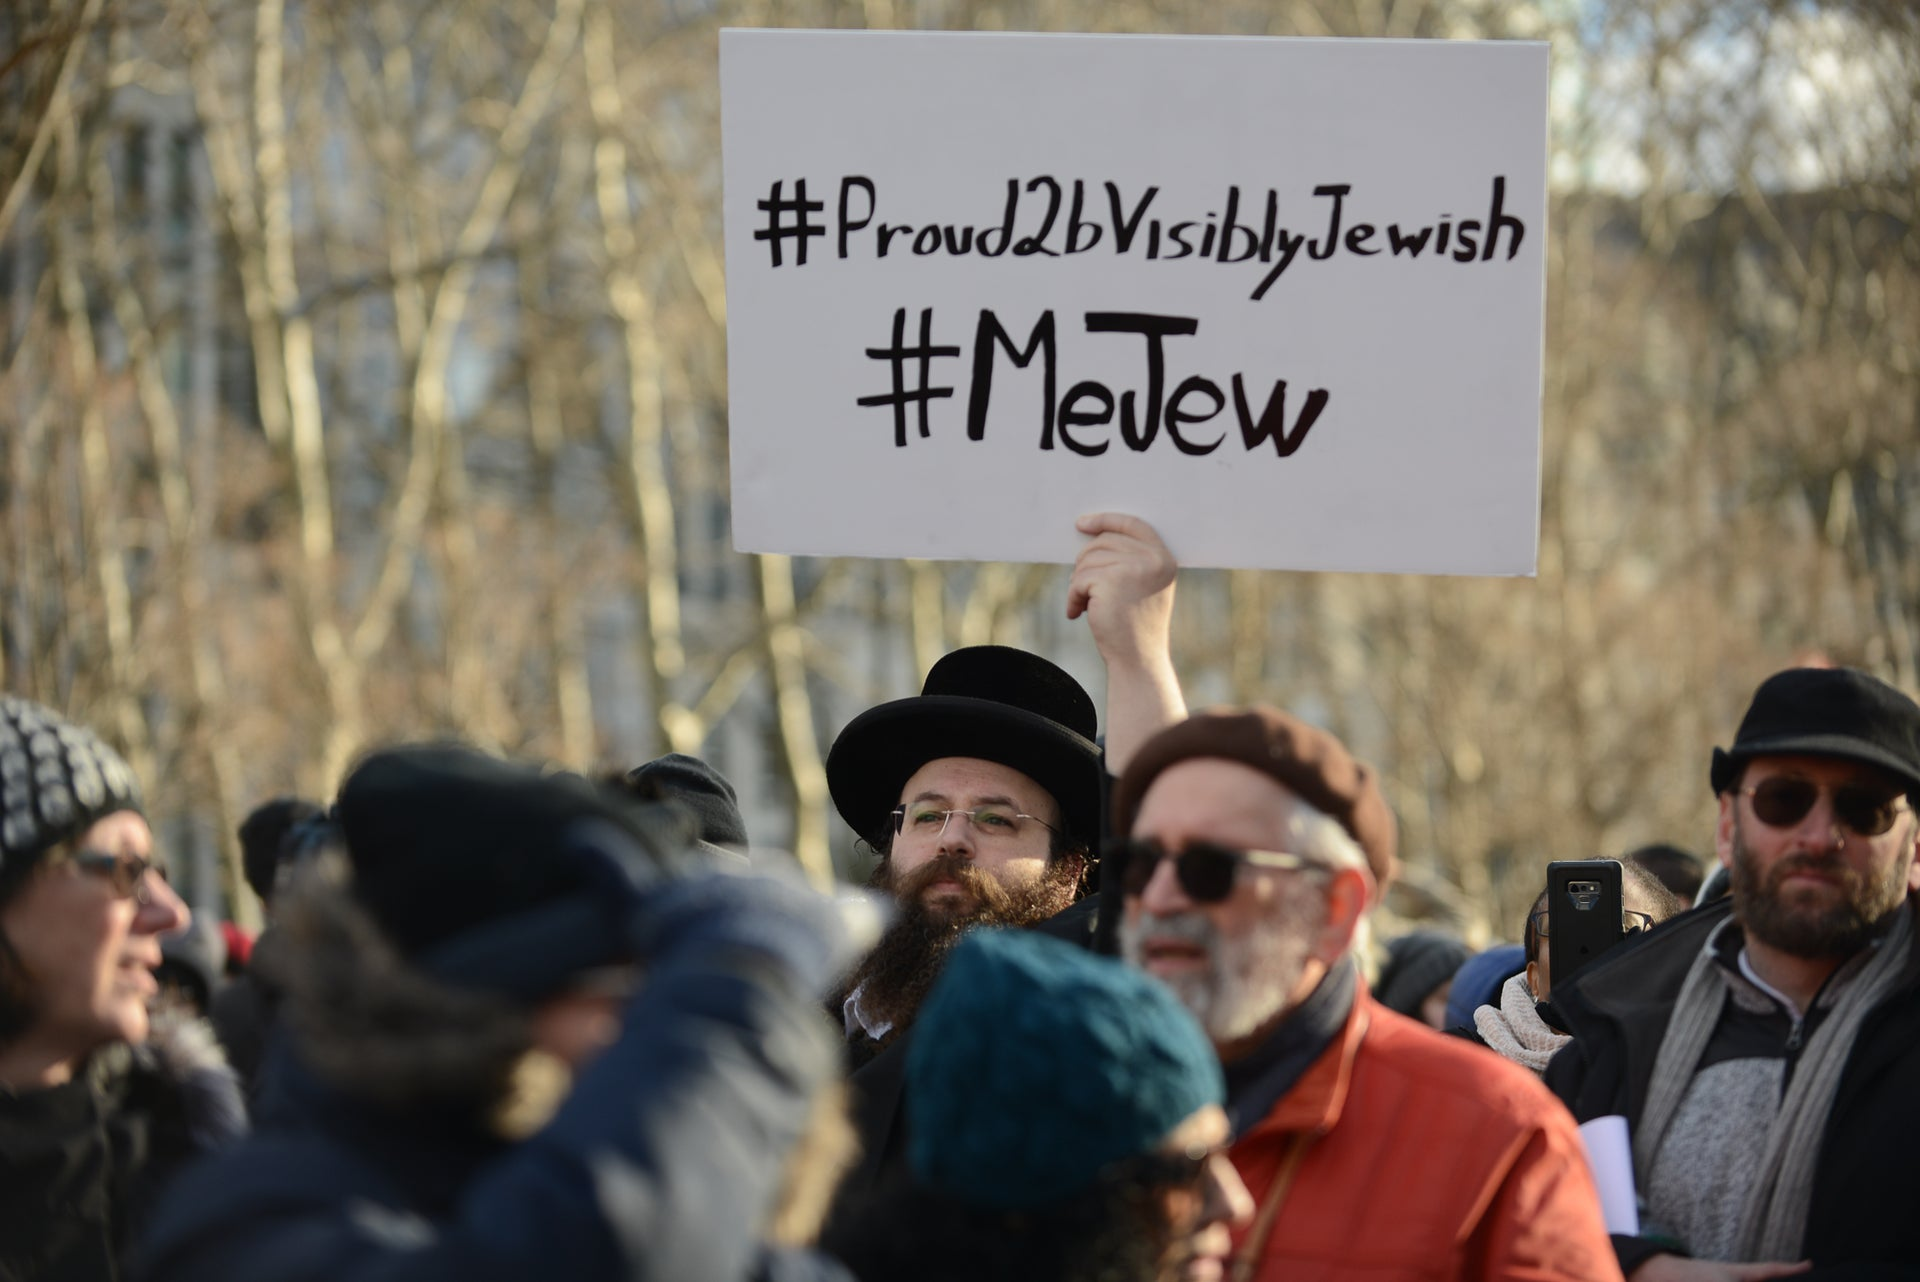 A protester during a march against anti-Semitism, New York, January 5, 2020